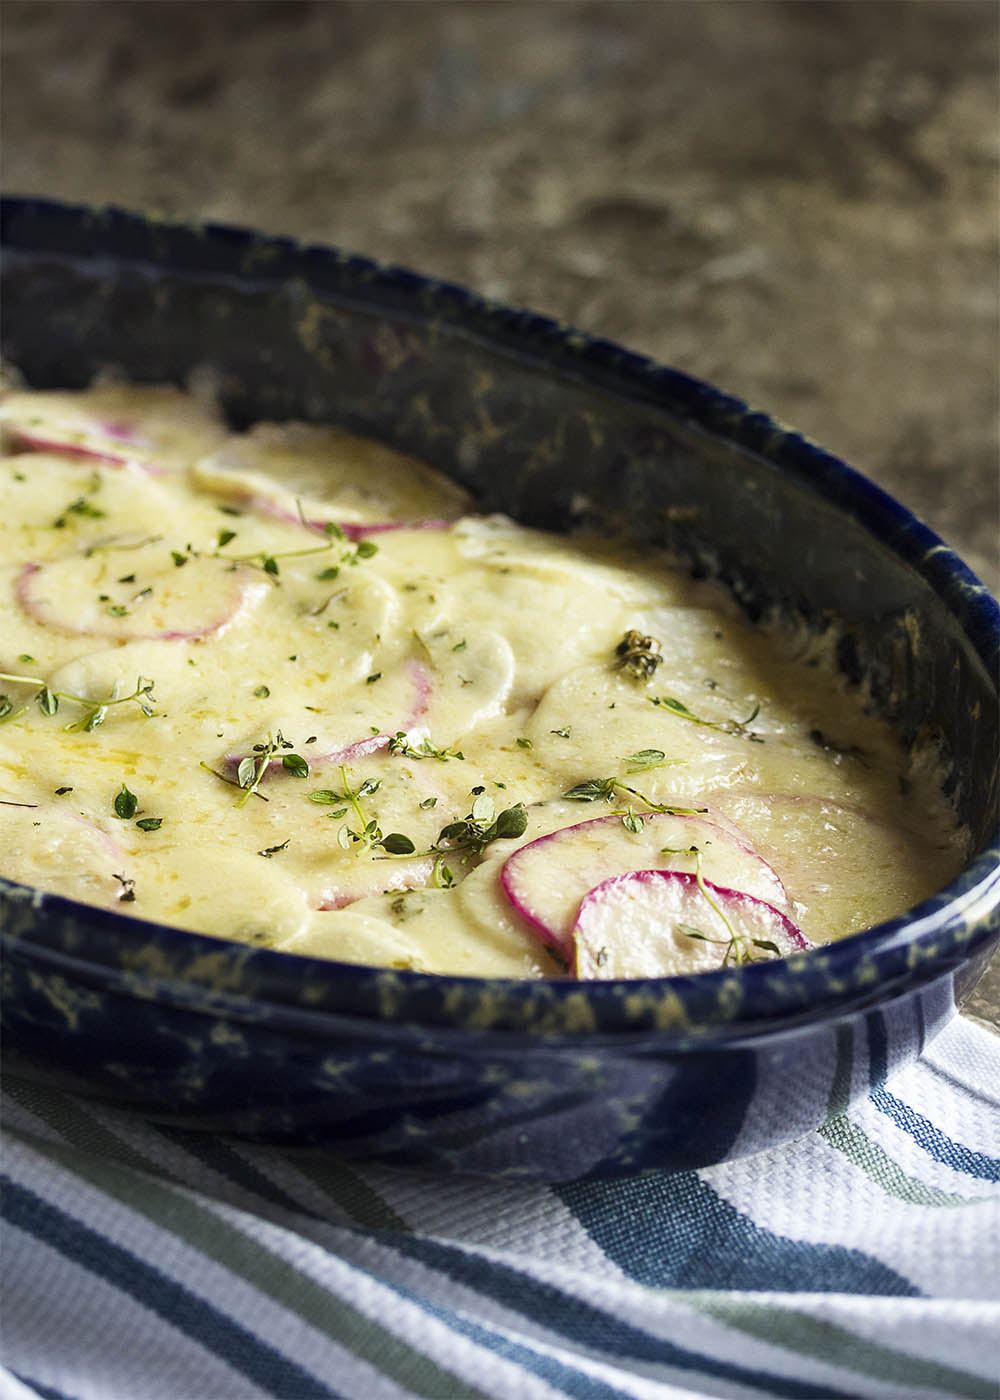 A casserole dish of simple turnip gratin topped with melted gruyere cheese and fresh thyme.